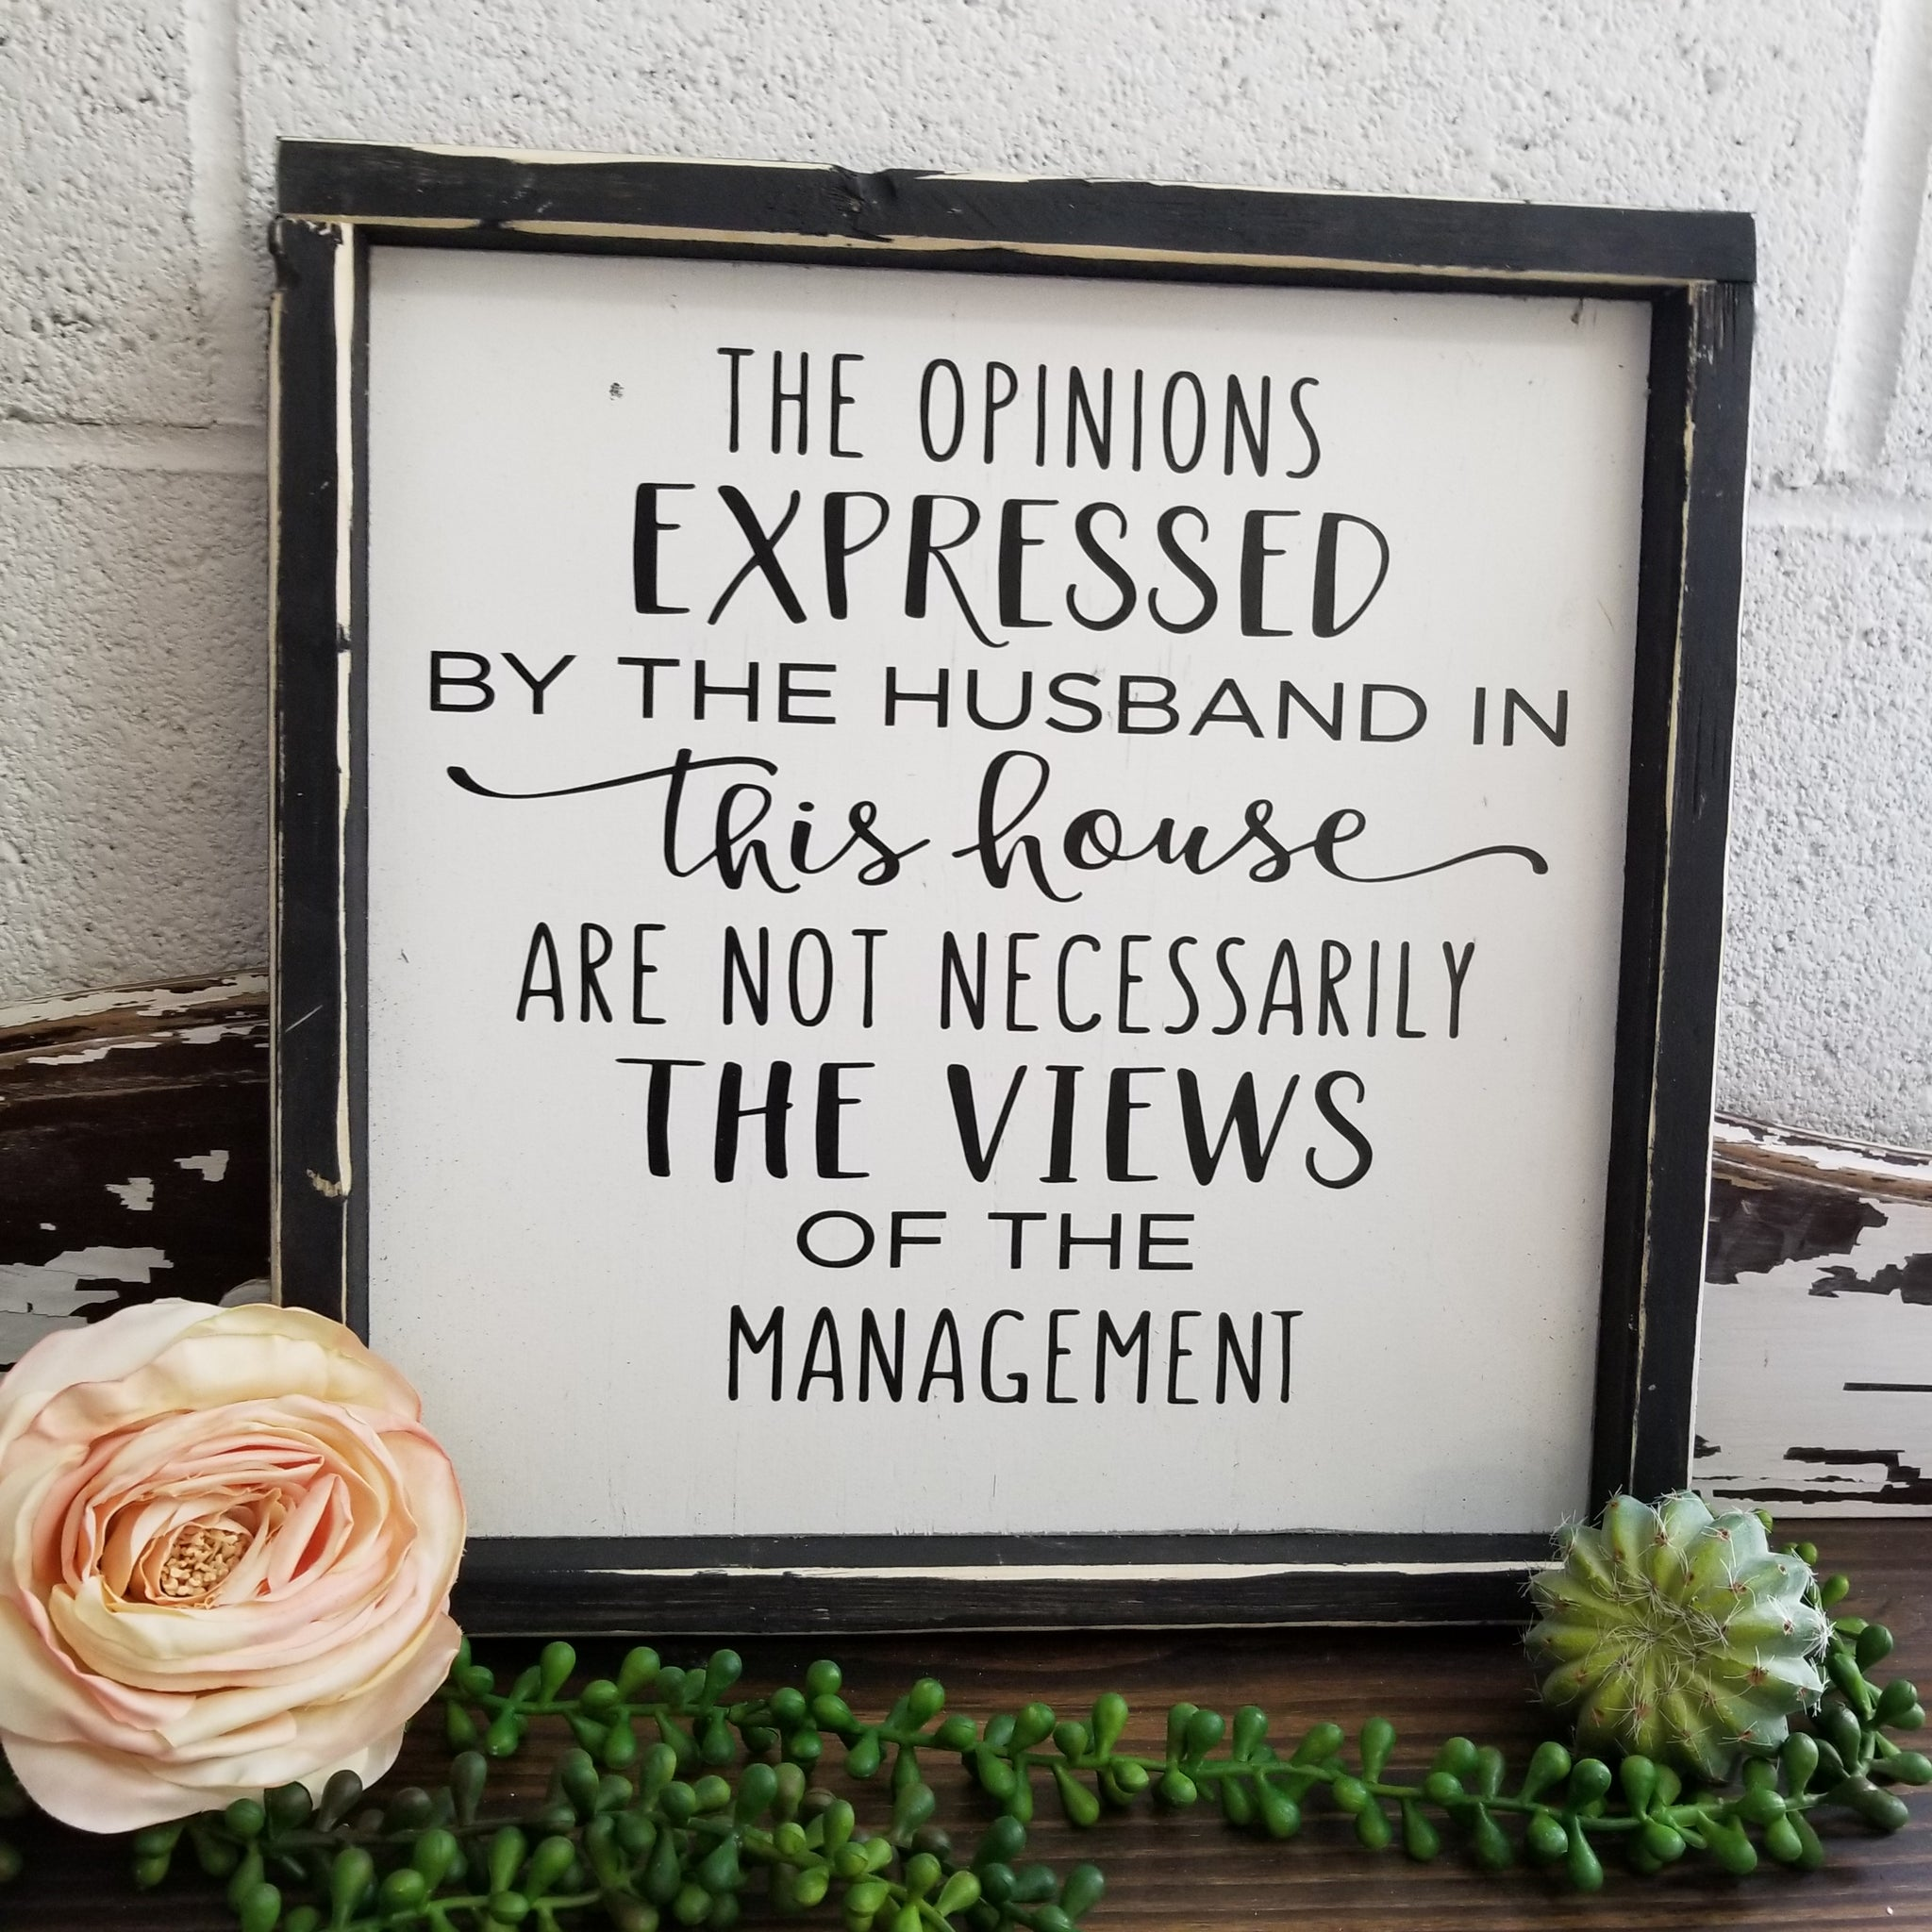 Views of Management